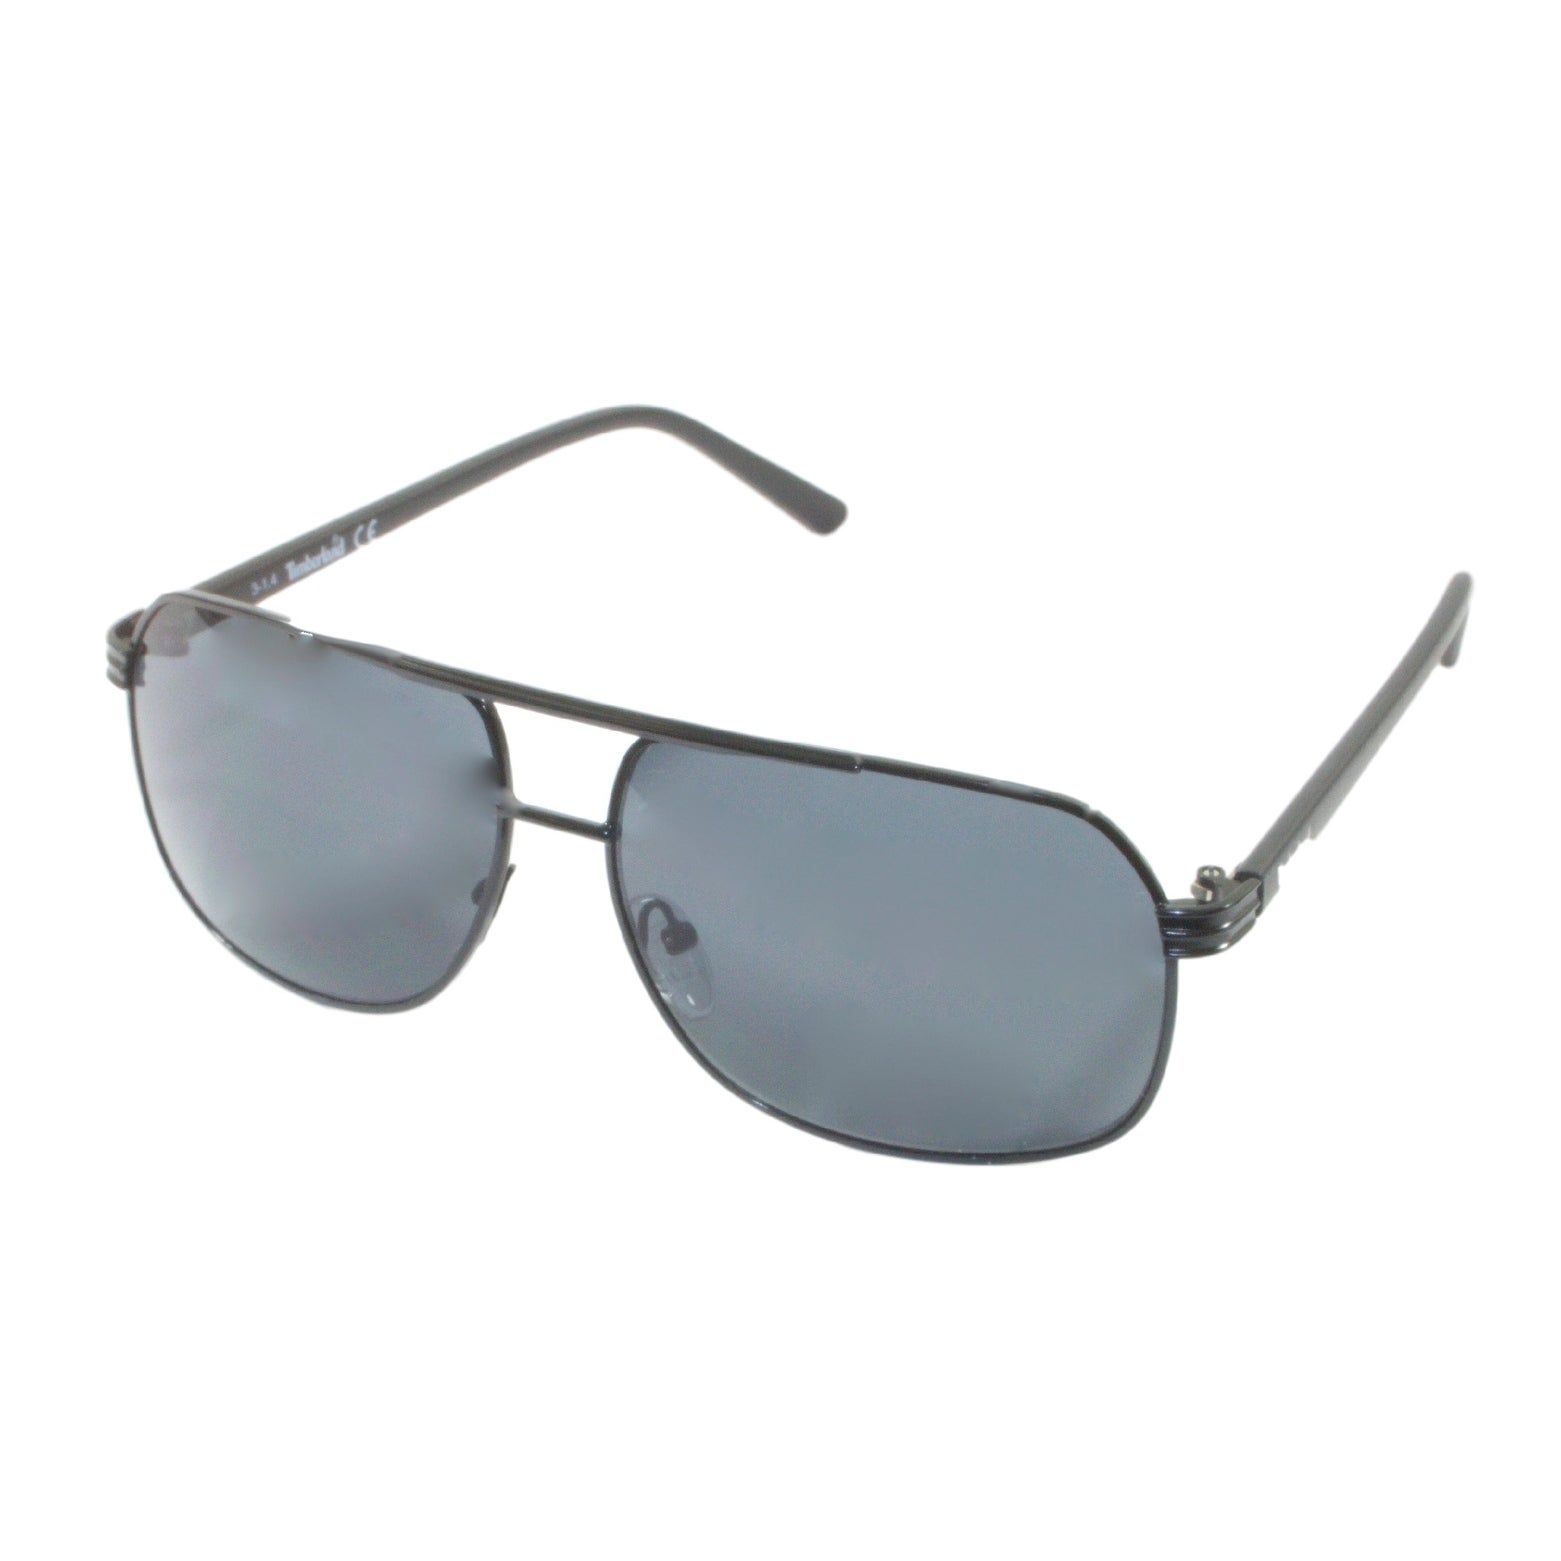 Timberland Sunglass Black ,Mens Metal Aviator Smoke Gradient Lens TB7120 2N - Medium - Thumbnail 0